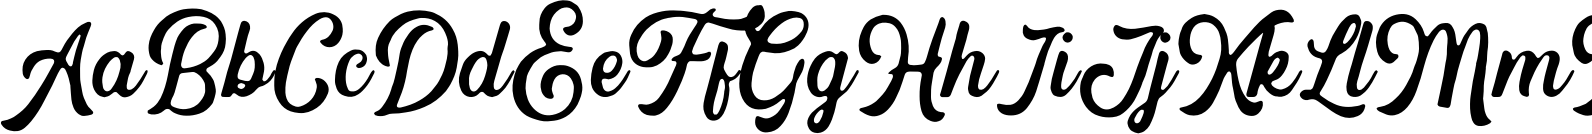 Hipsterious Rough Font